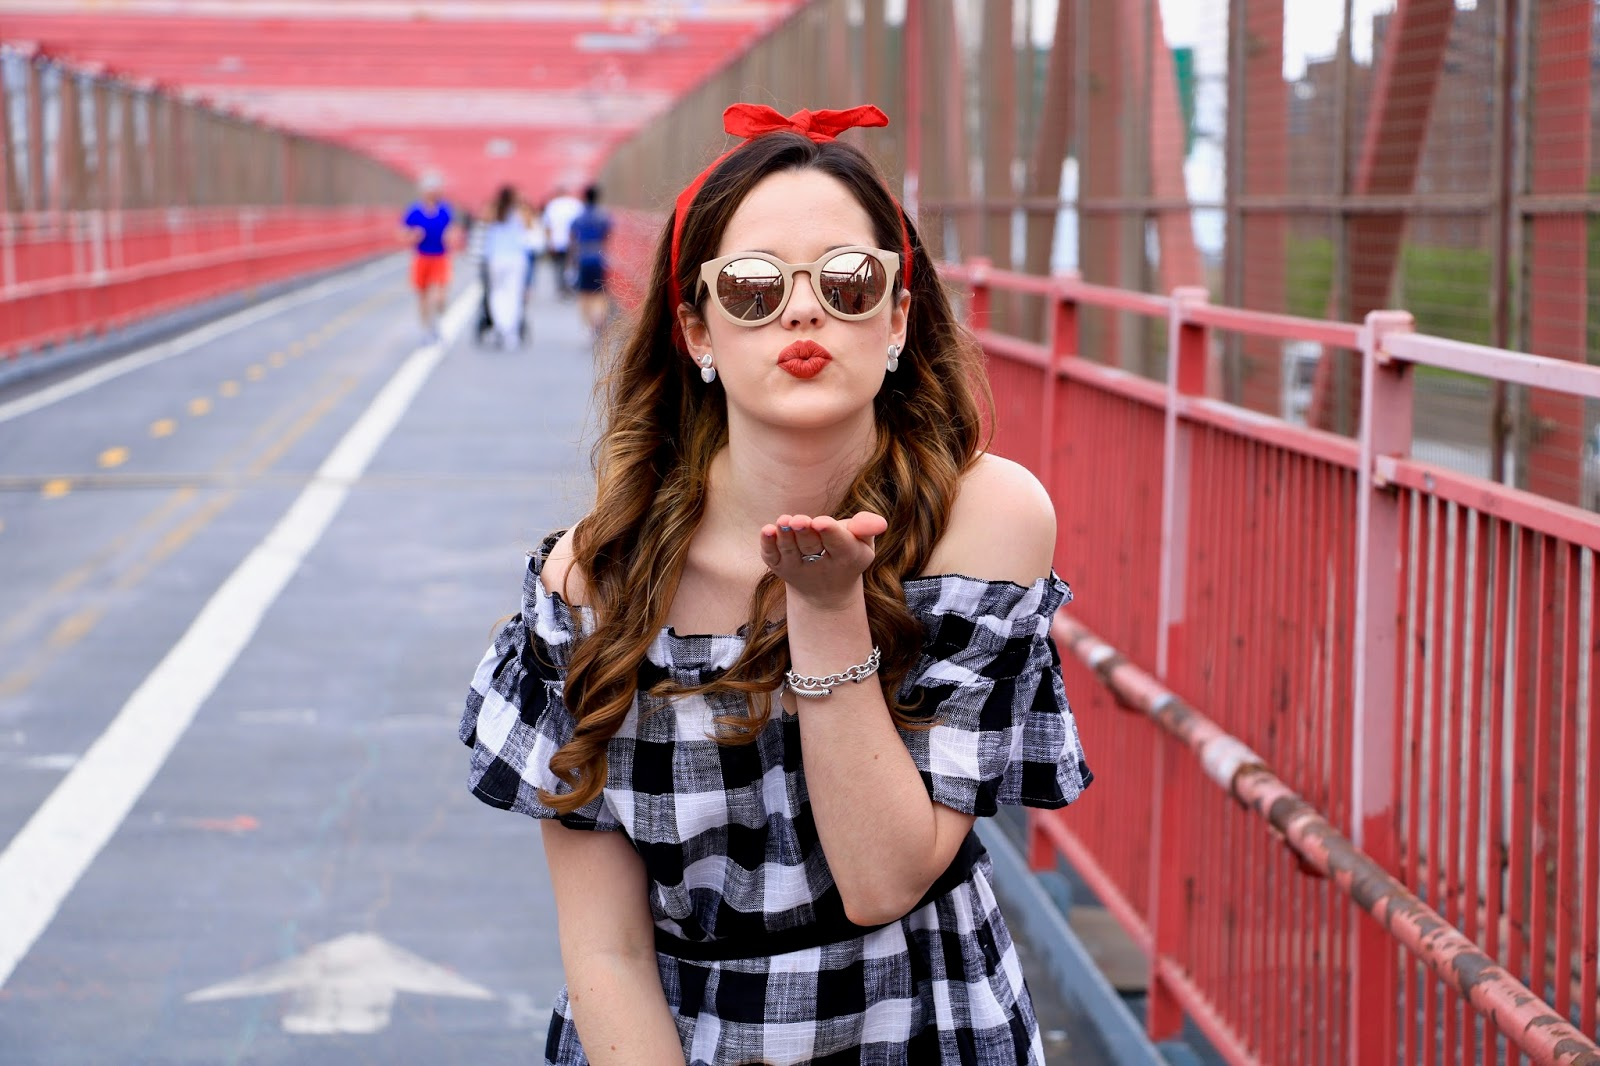 Fashion blogger Kathleen Harper in red bandana headband and off-the-shoulder dress